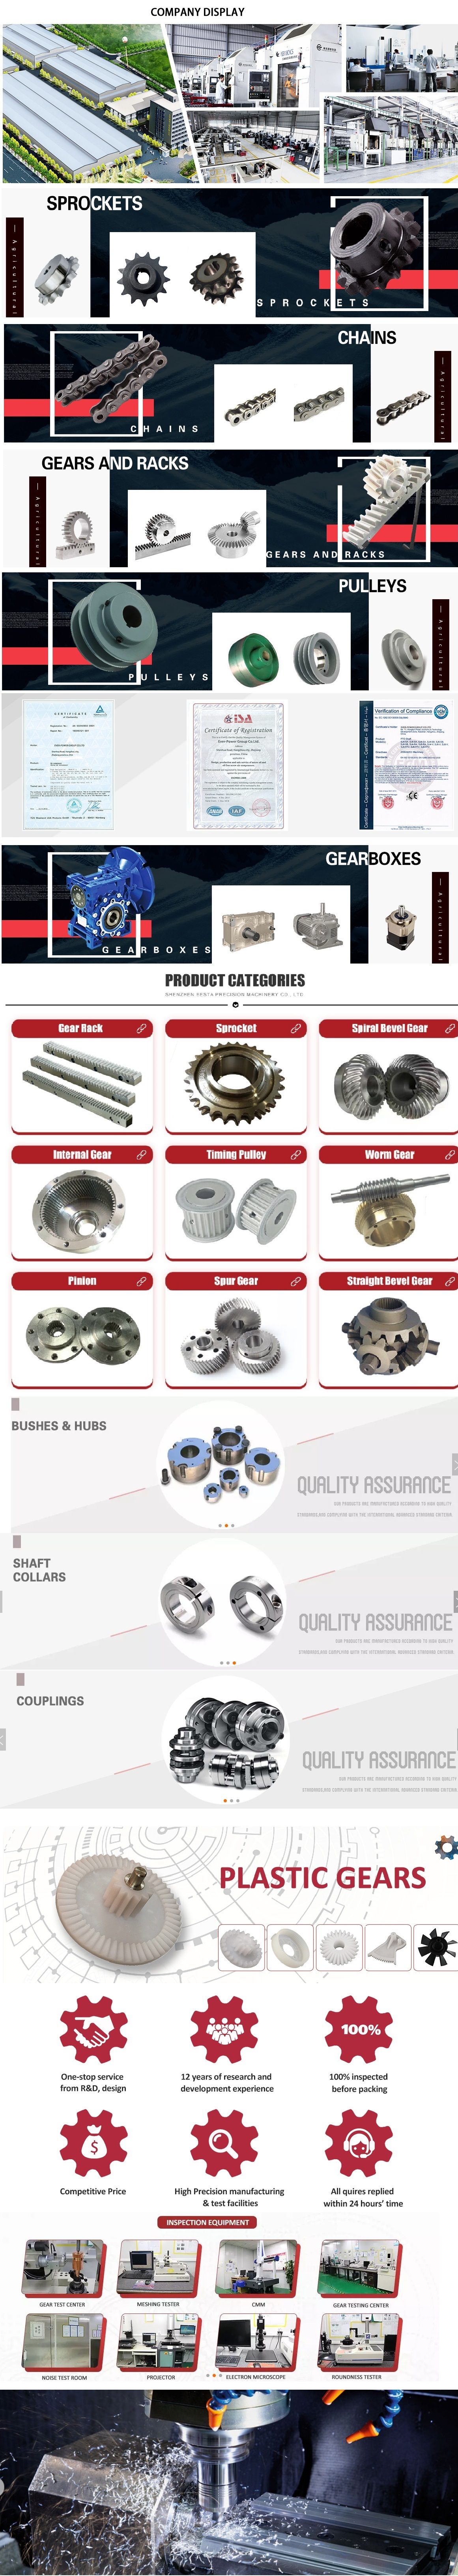 in Dasmarinas Philippines  sales   price   shop   near me   near me shop   factory   supplier Spiral Bevel Gear Speed Reducer manufacturer   best   Cost   Custom   Cheap   wholesaler